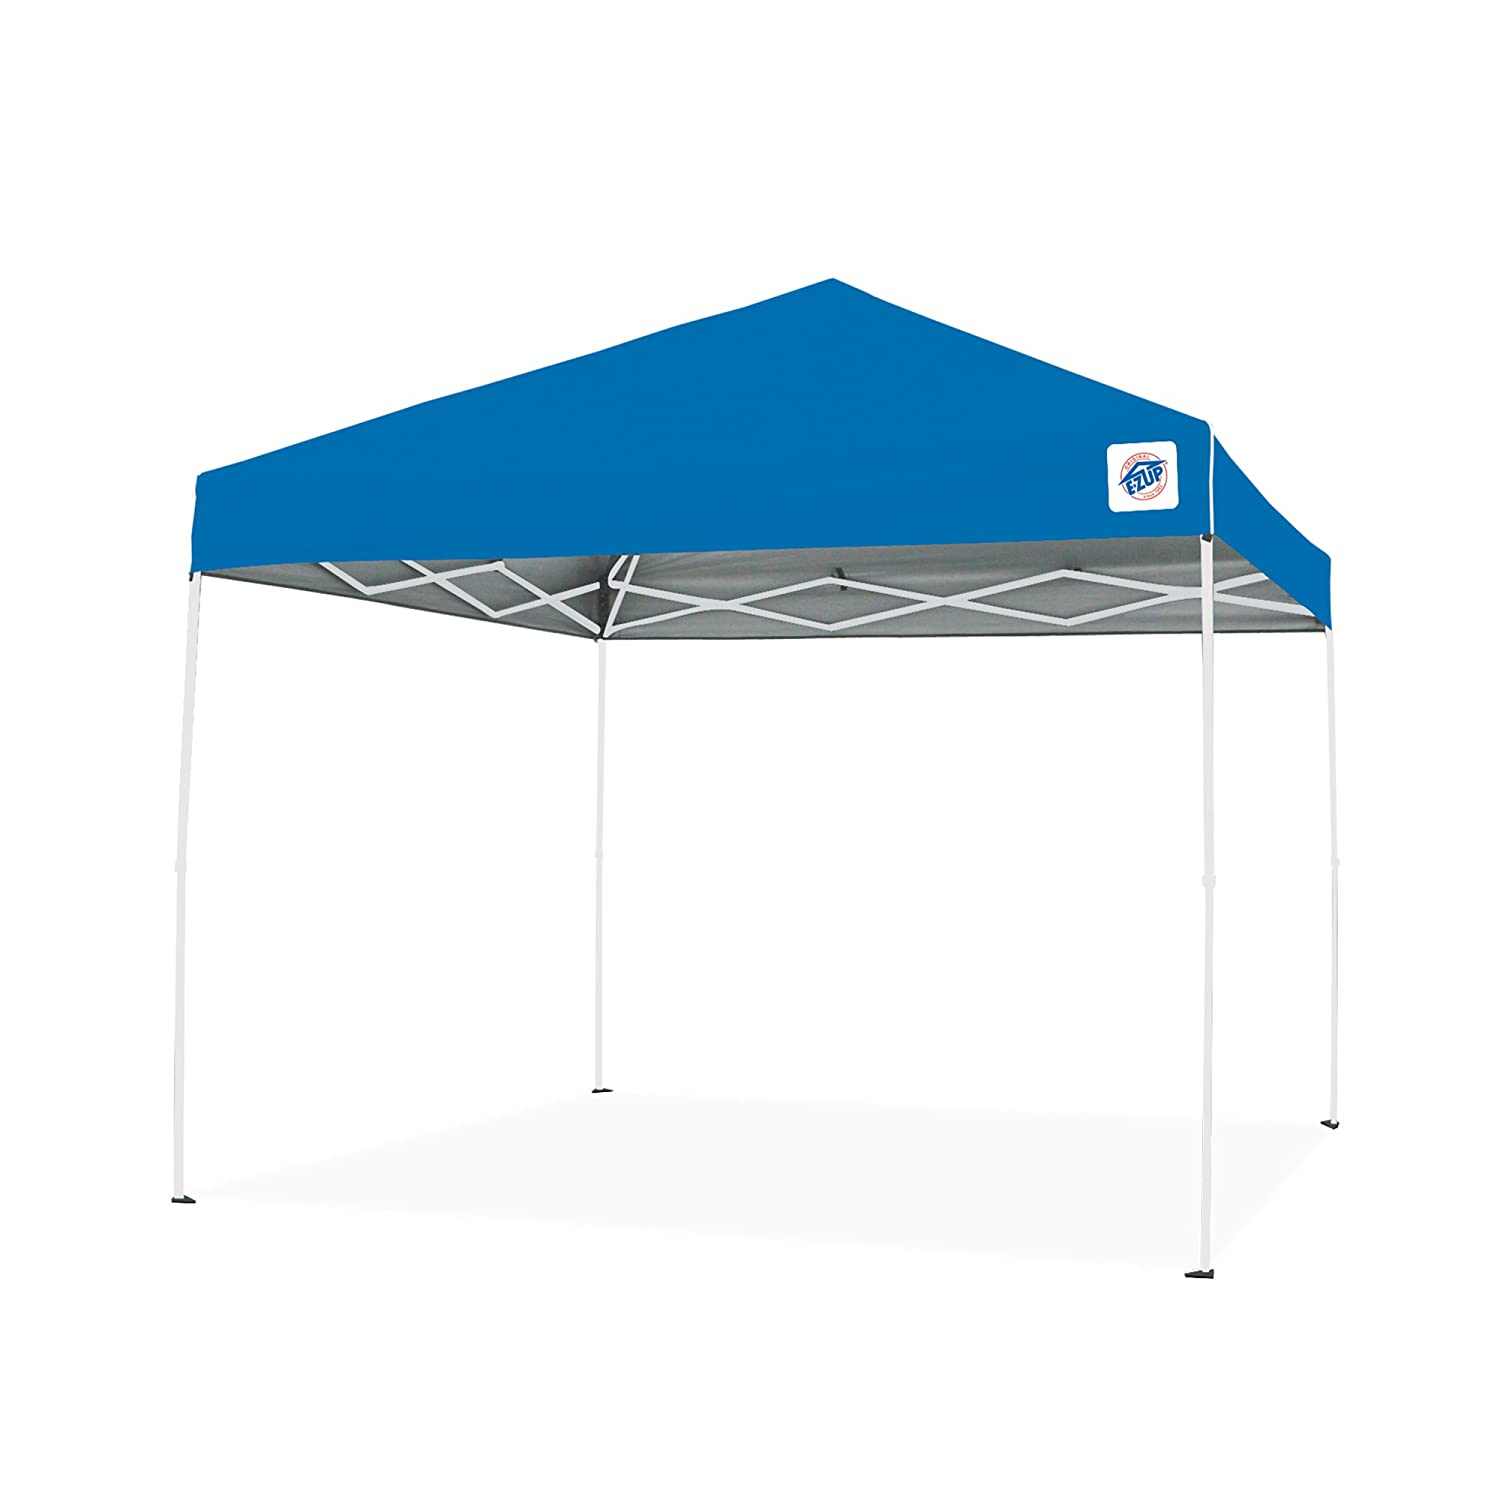 Amazon.com  E-Z UP Envoy Instant Shelter Canopy 10 by 10u0027 Blue  Garden u0026 Outdoor  sc 1 st  Amazon.com & Amazon.com : E-Z UP Envoy Instant Shelter Canopy 10 by 10u0027 Blue ...